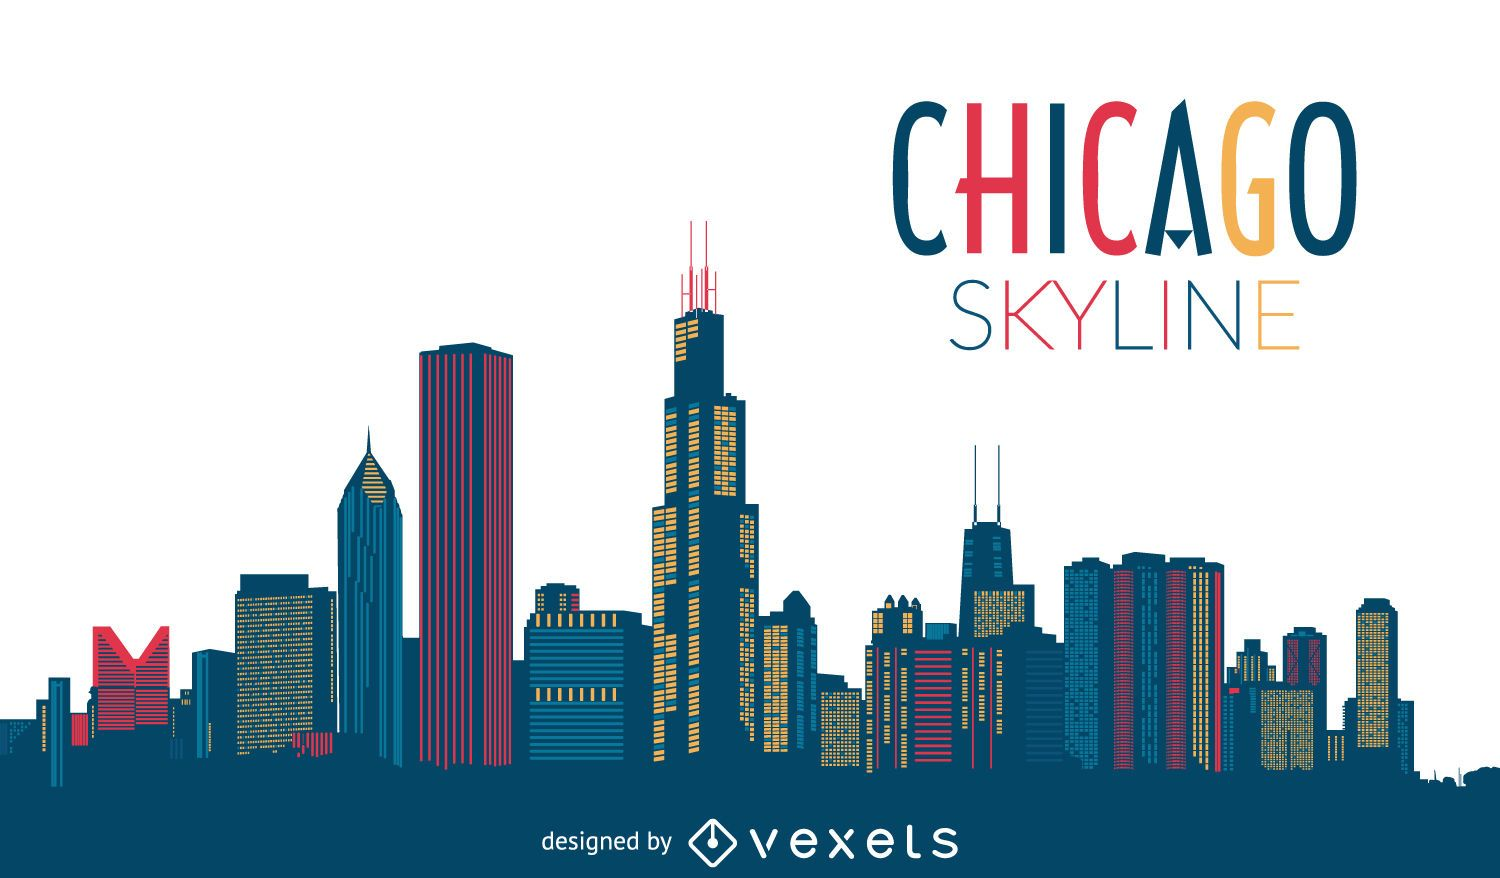 chicago skyline silhouette vector download